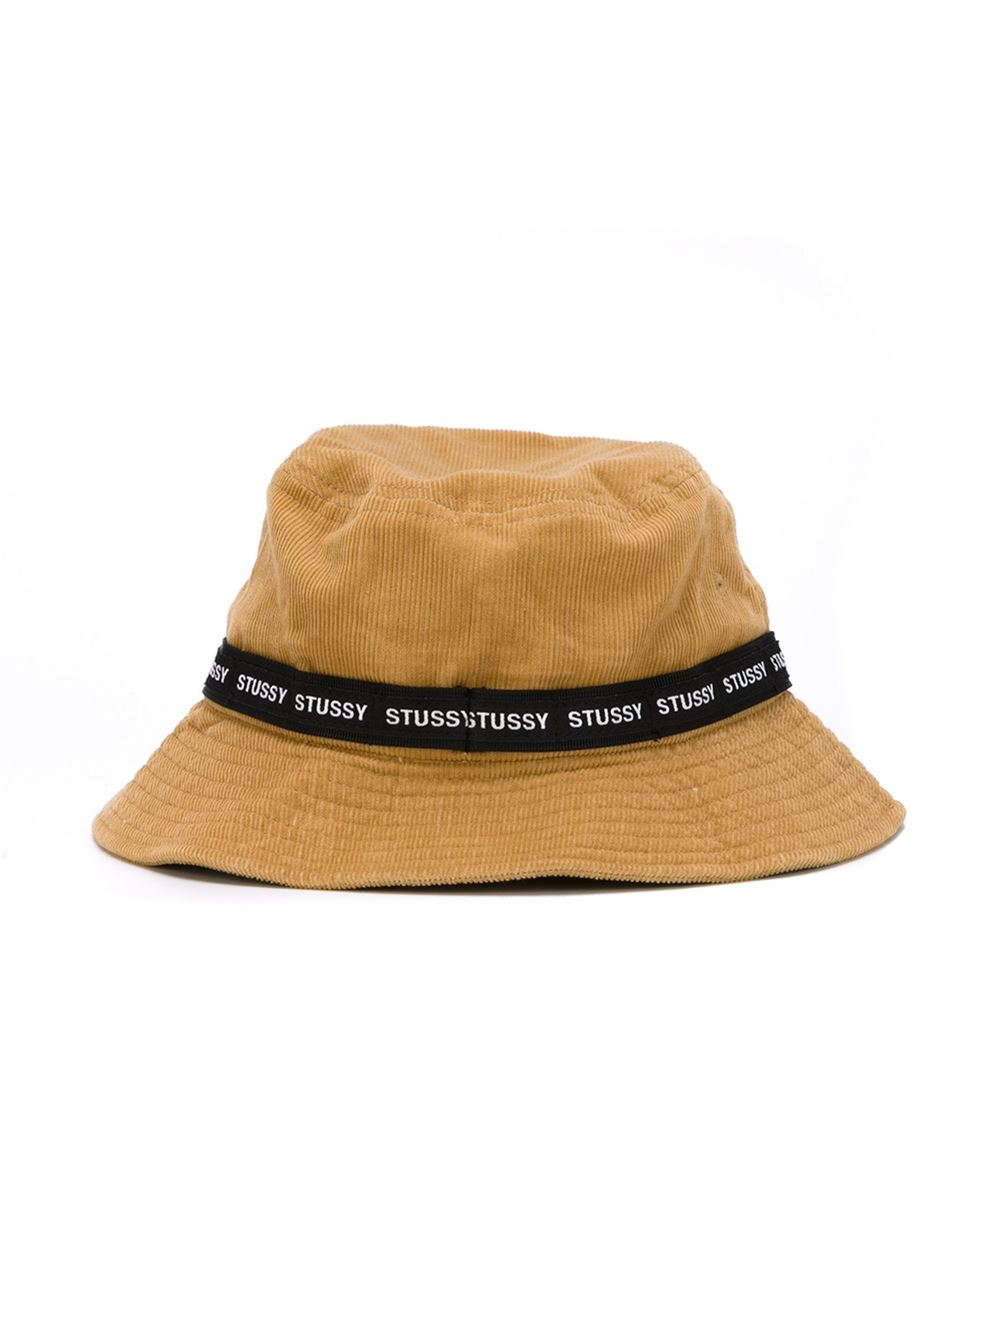 Lyst - Stussy Logo Band Corduroy Bucket Hat in Natural for Men 144bae83e9f